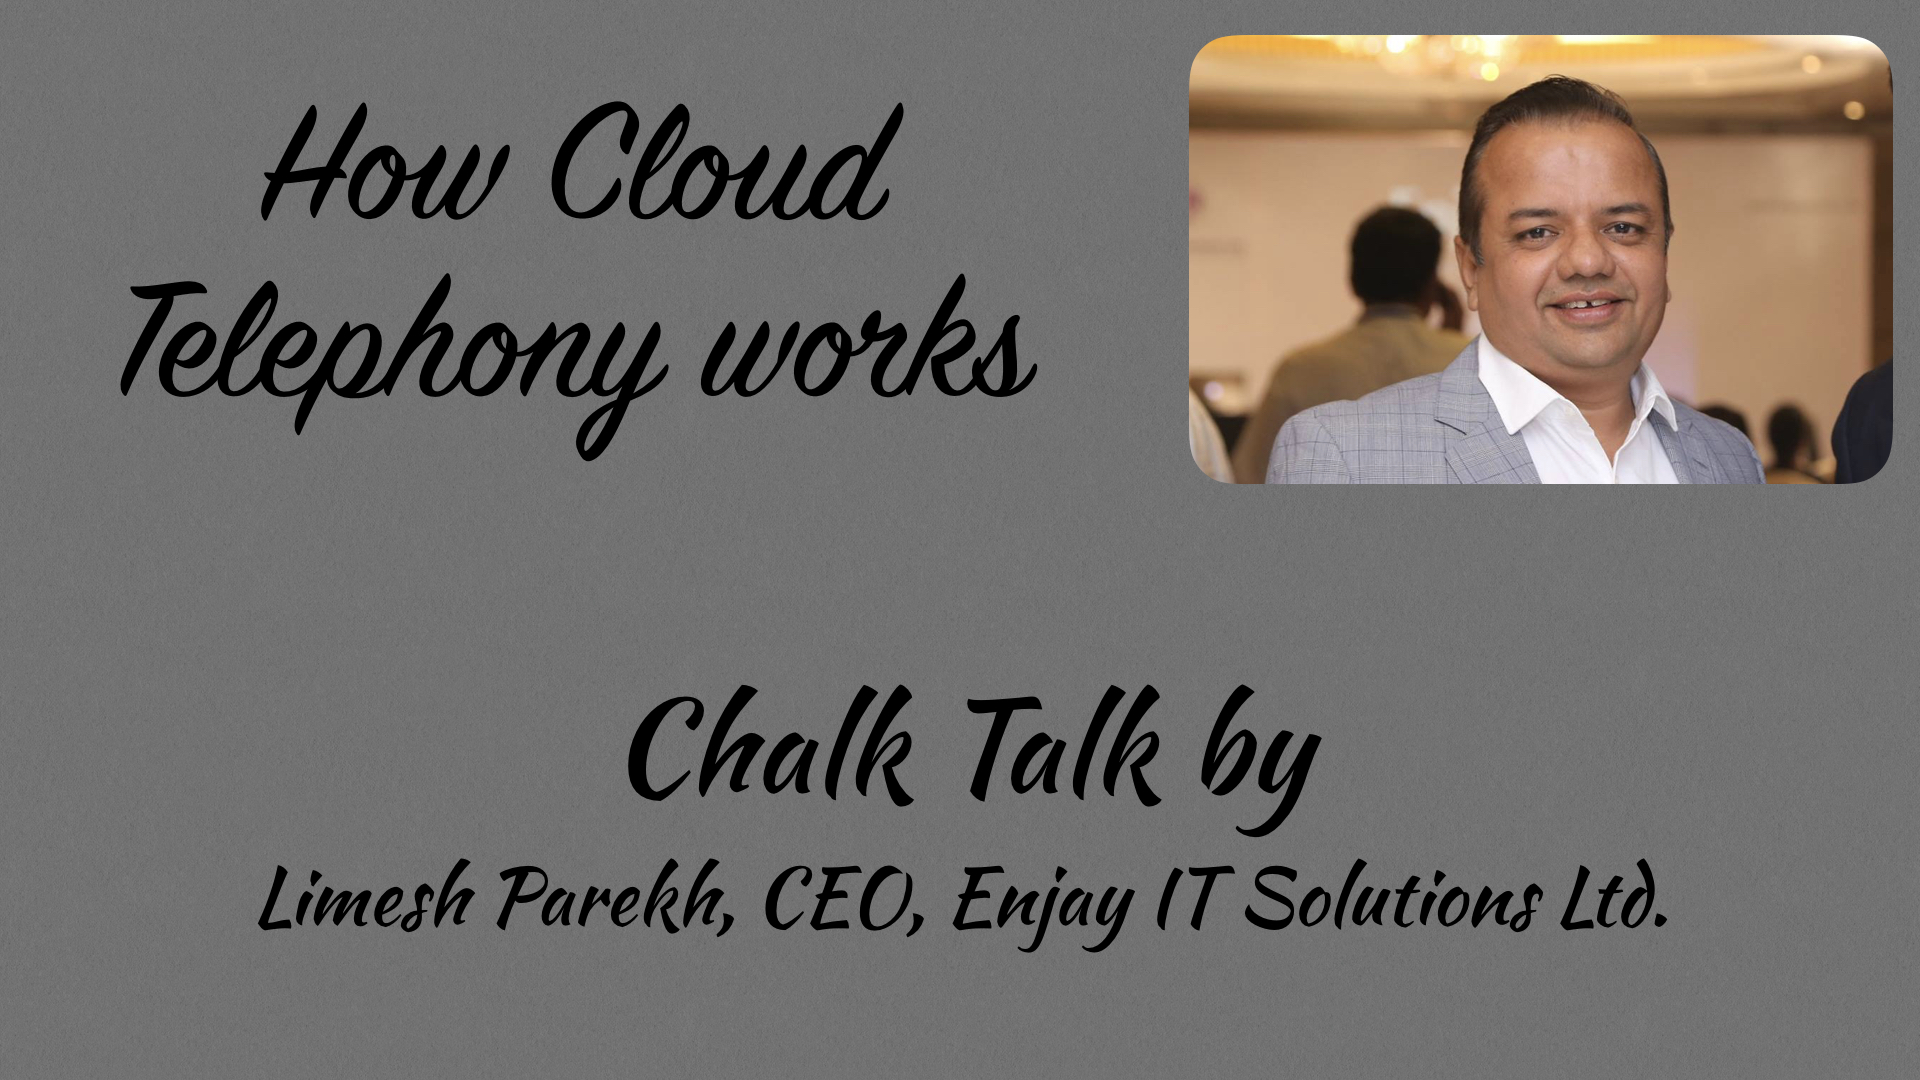 How Cloud Telephony works?